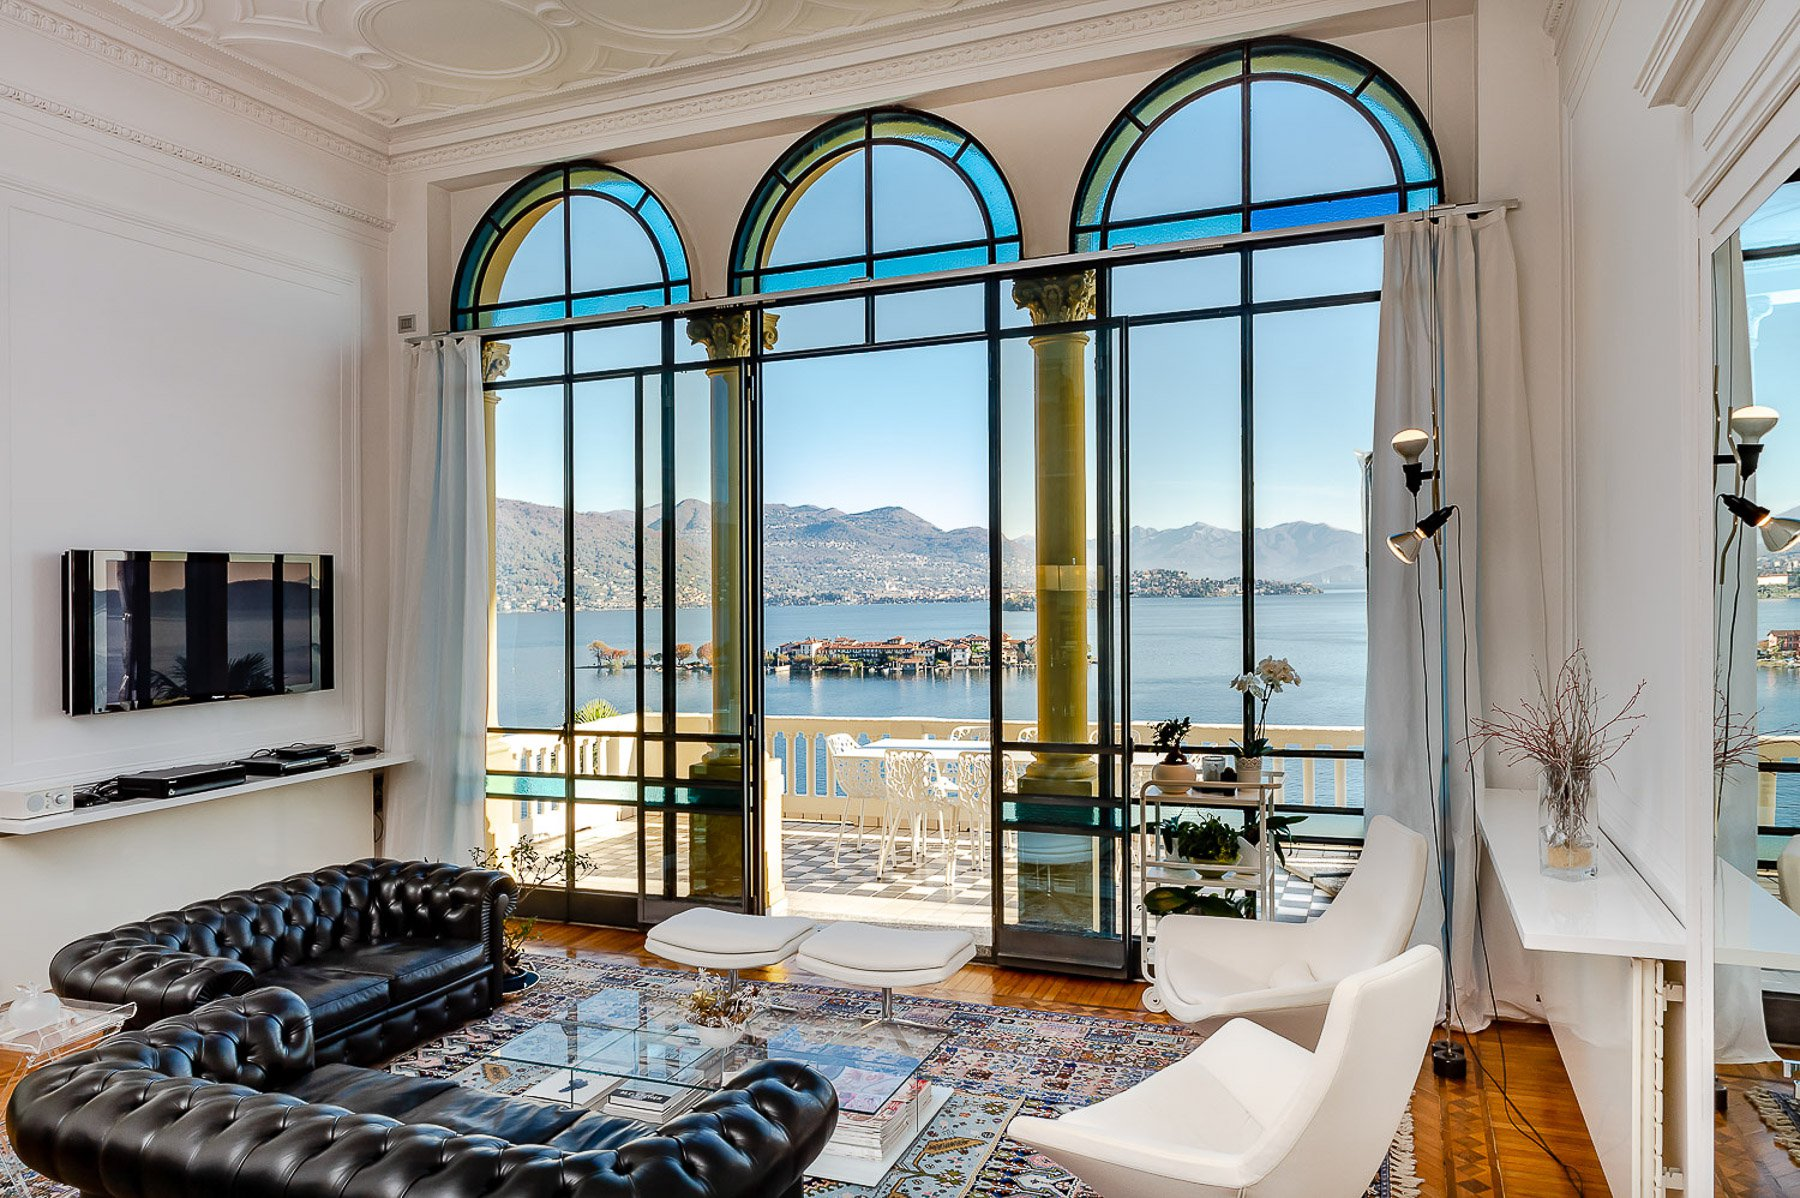 Luxury flat for sale in Baveno, in an historic villa